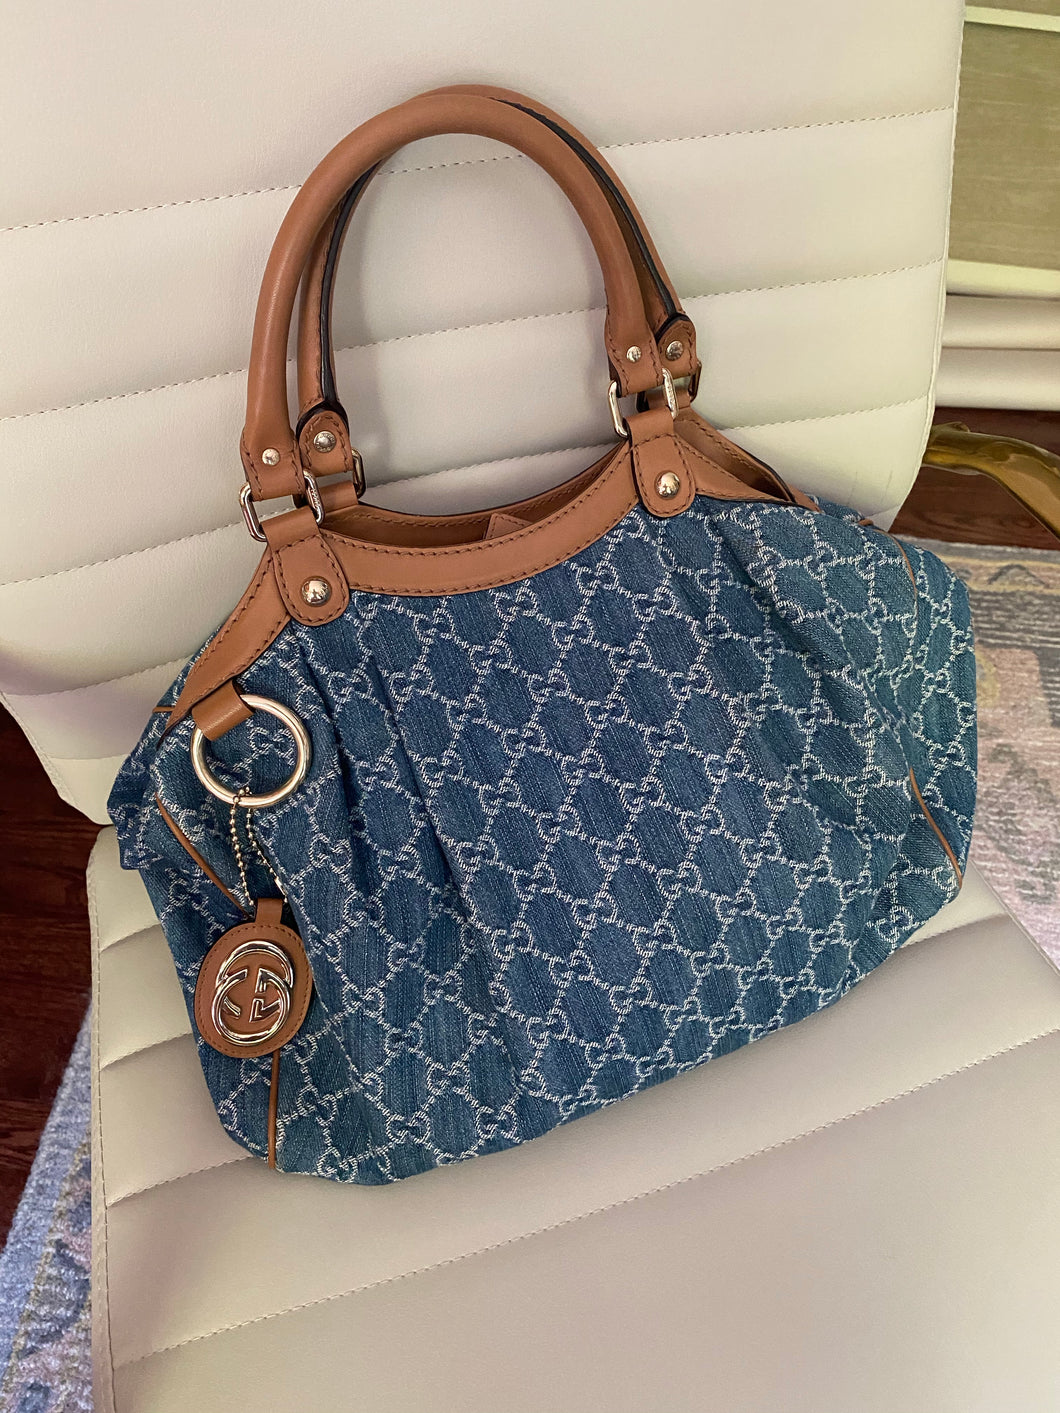 Gucci Denim Sukey tote with charm